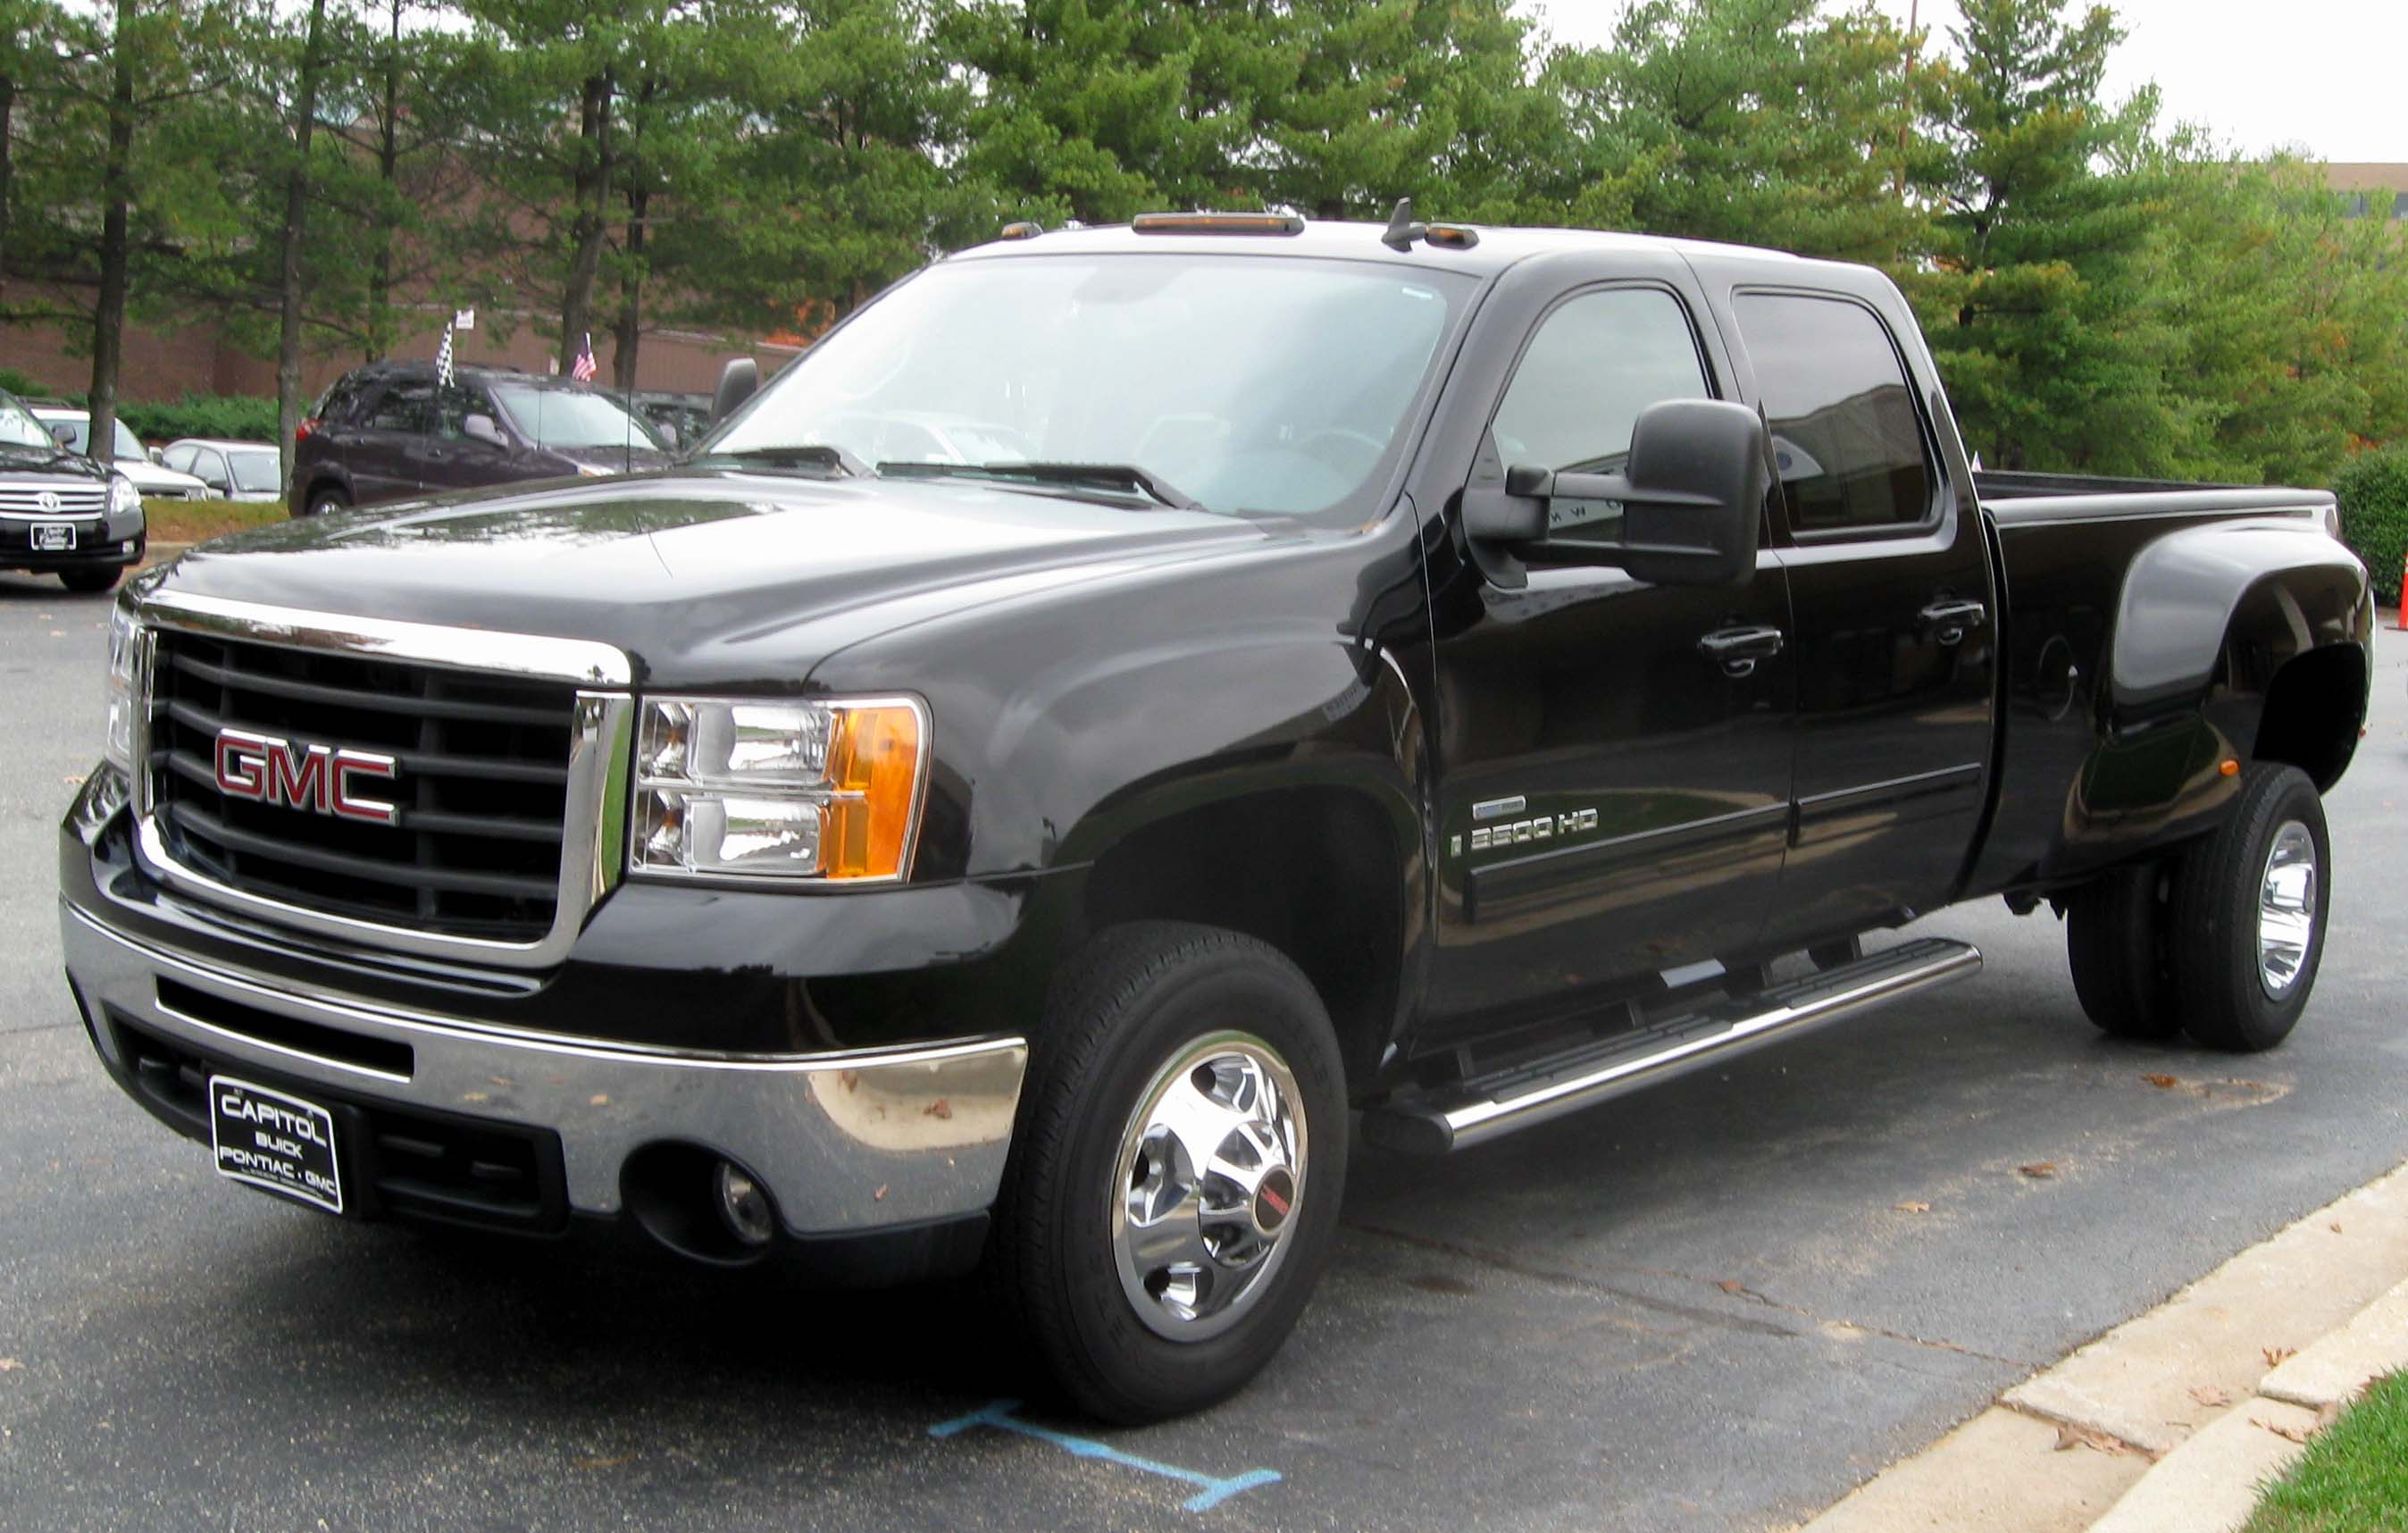 GMC Sierra 3500hd #1